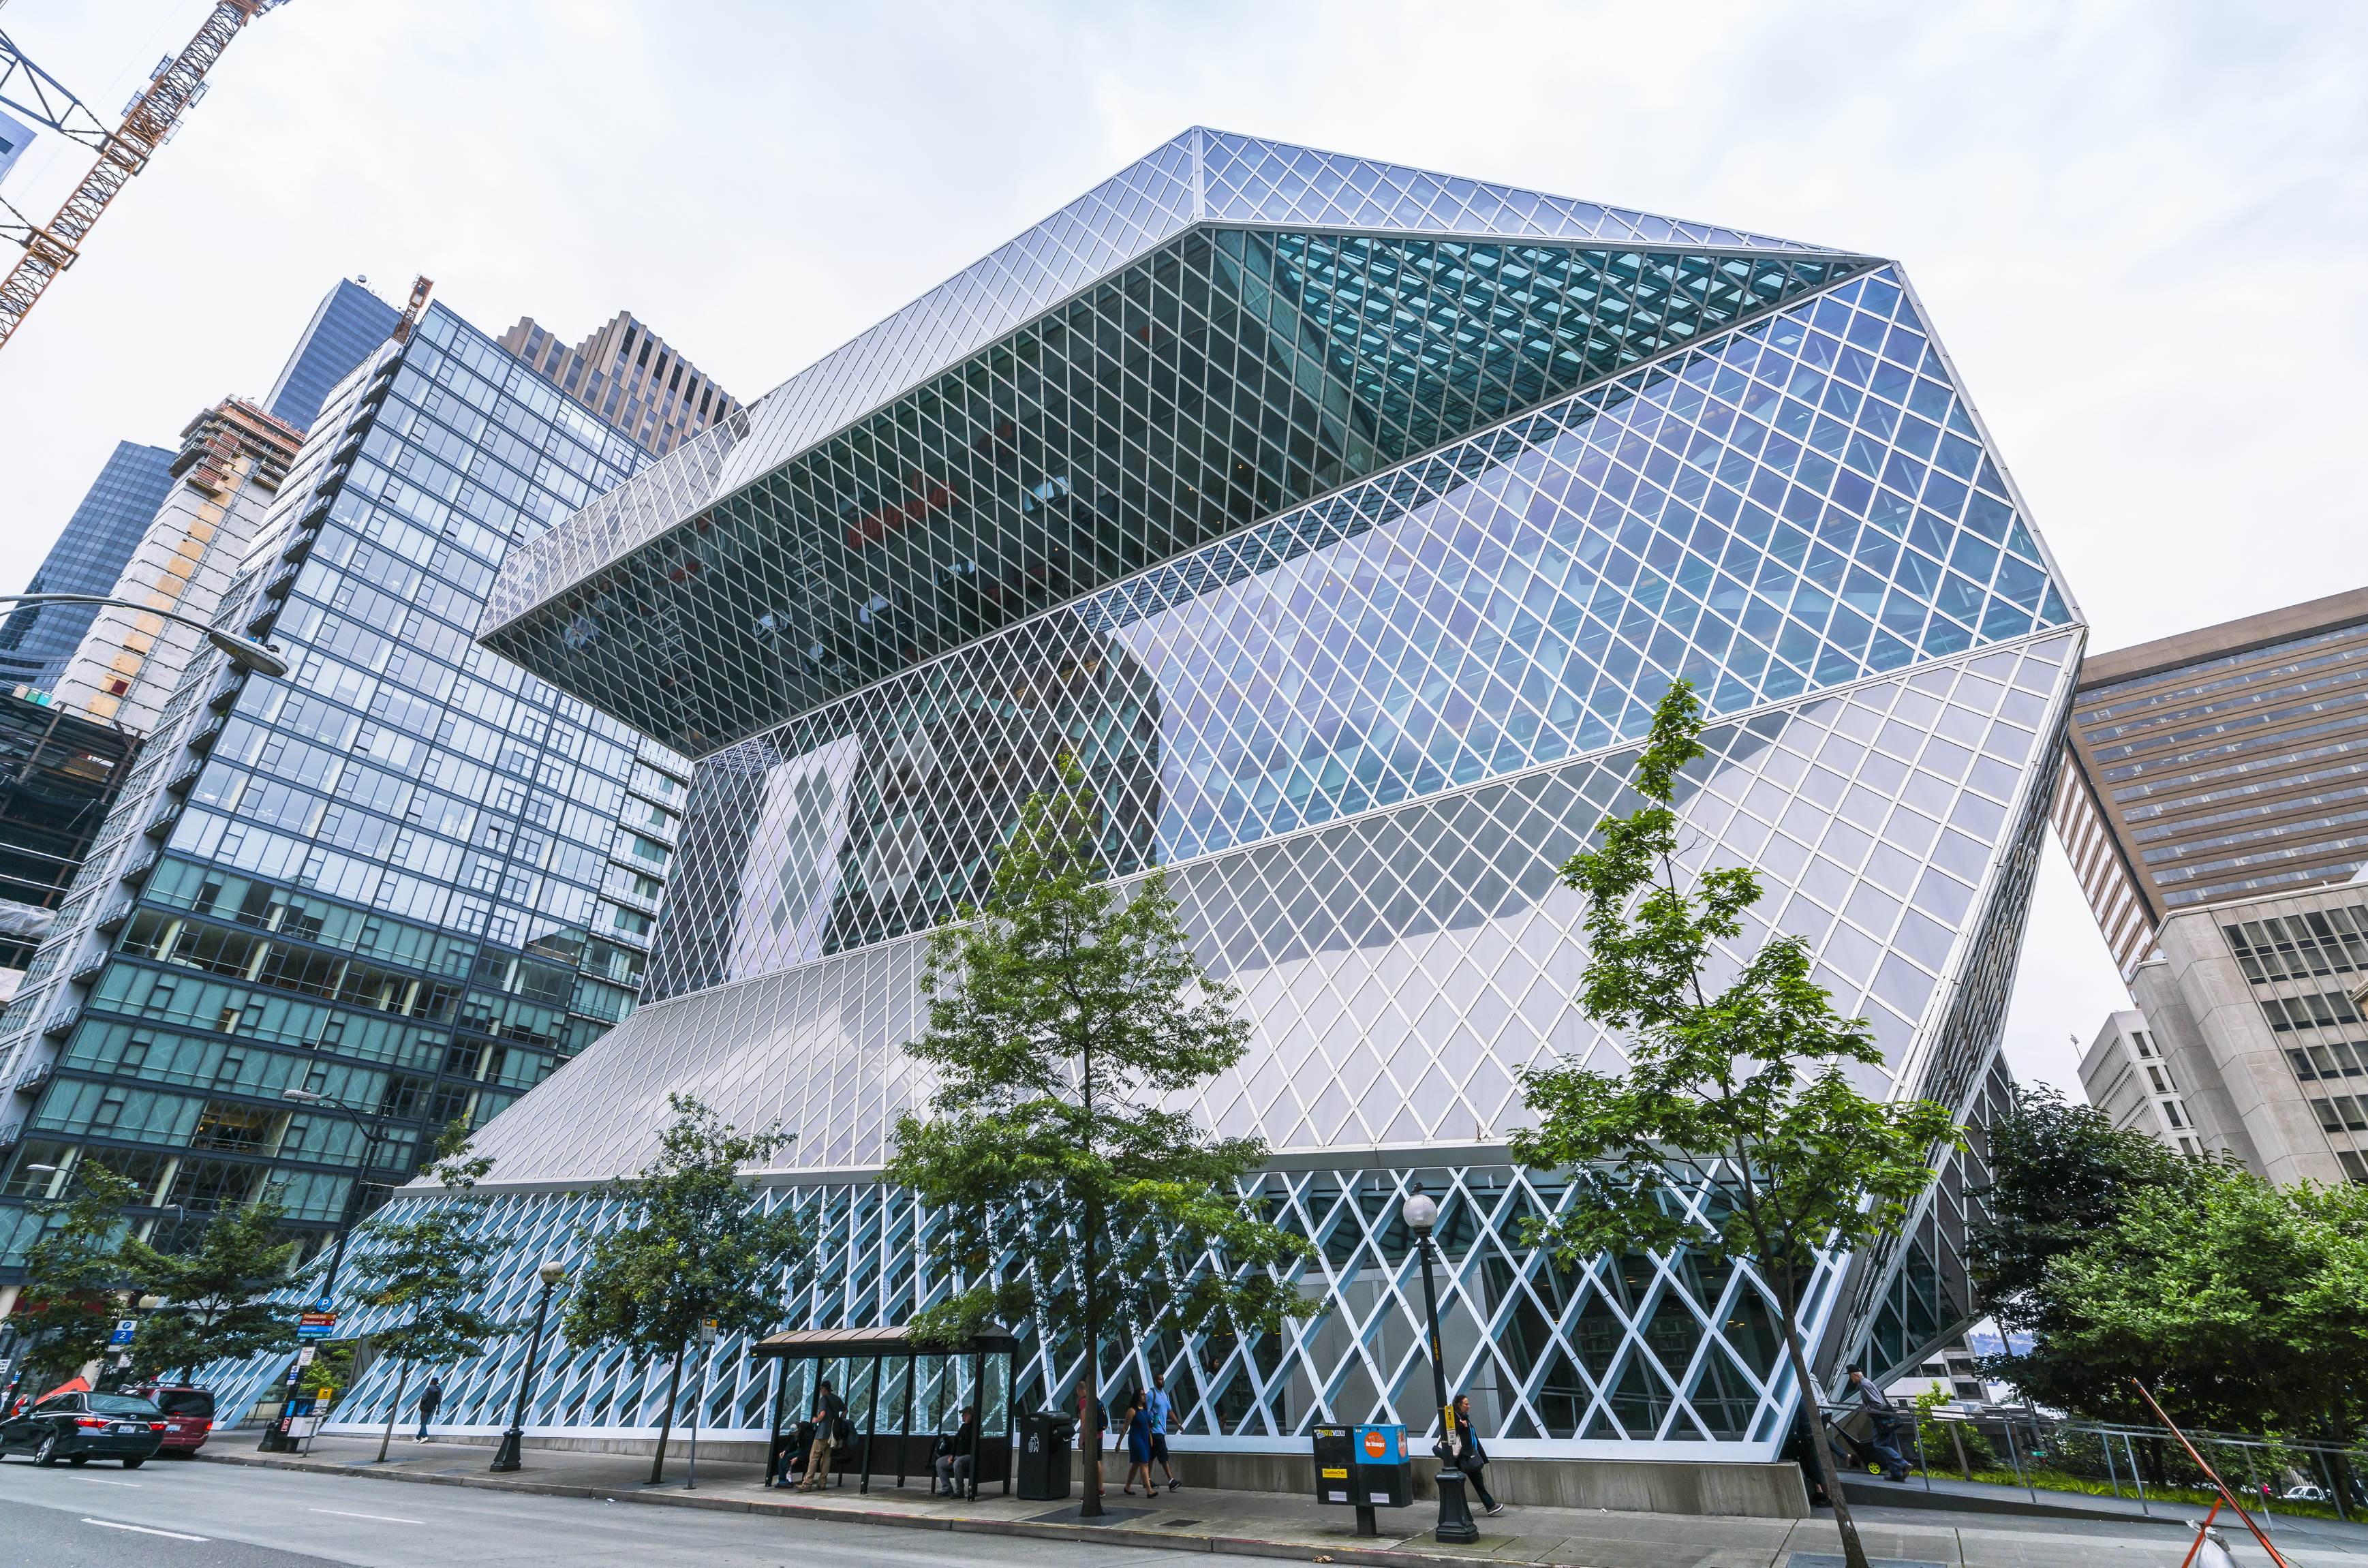 The Seattle Public Library in downtown Seattle. Shutterstock